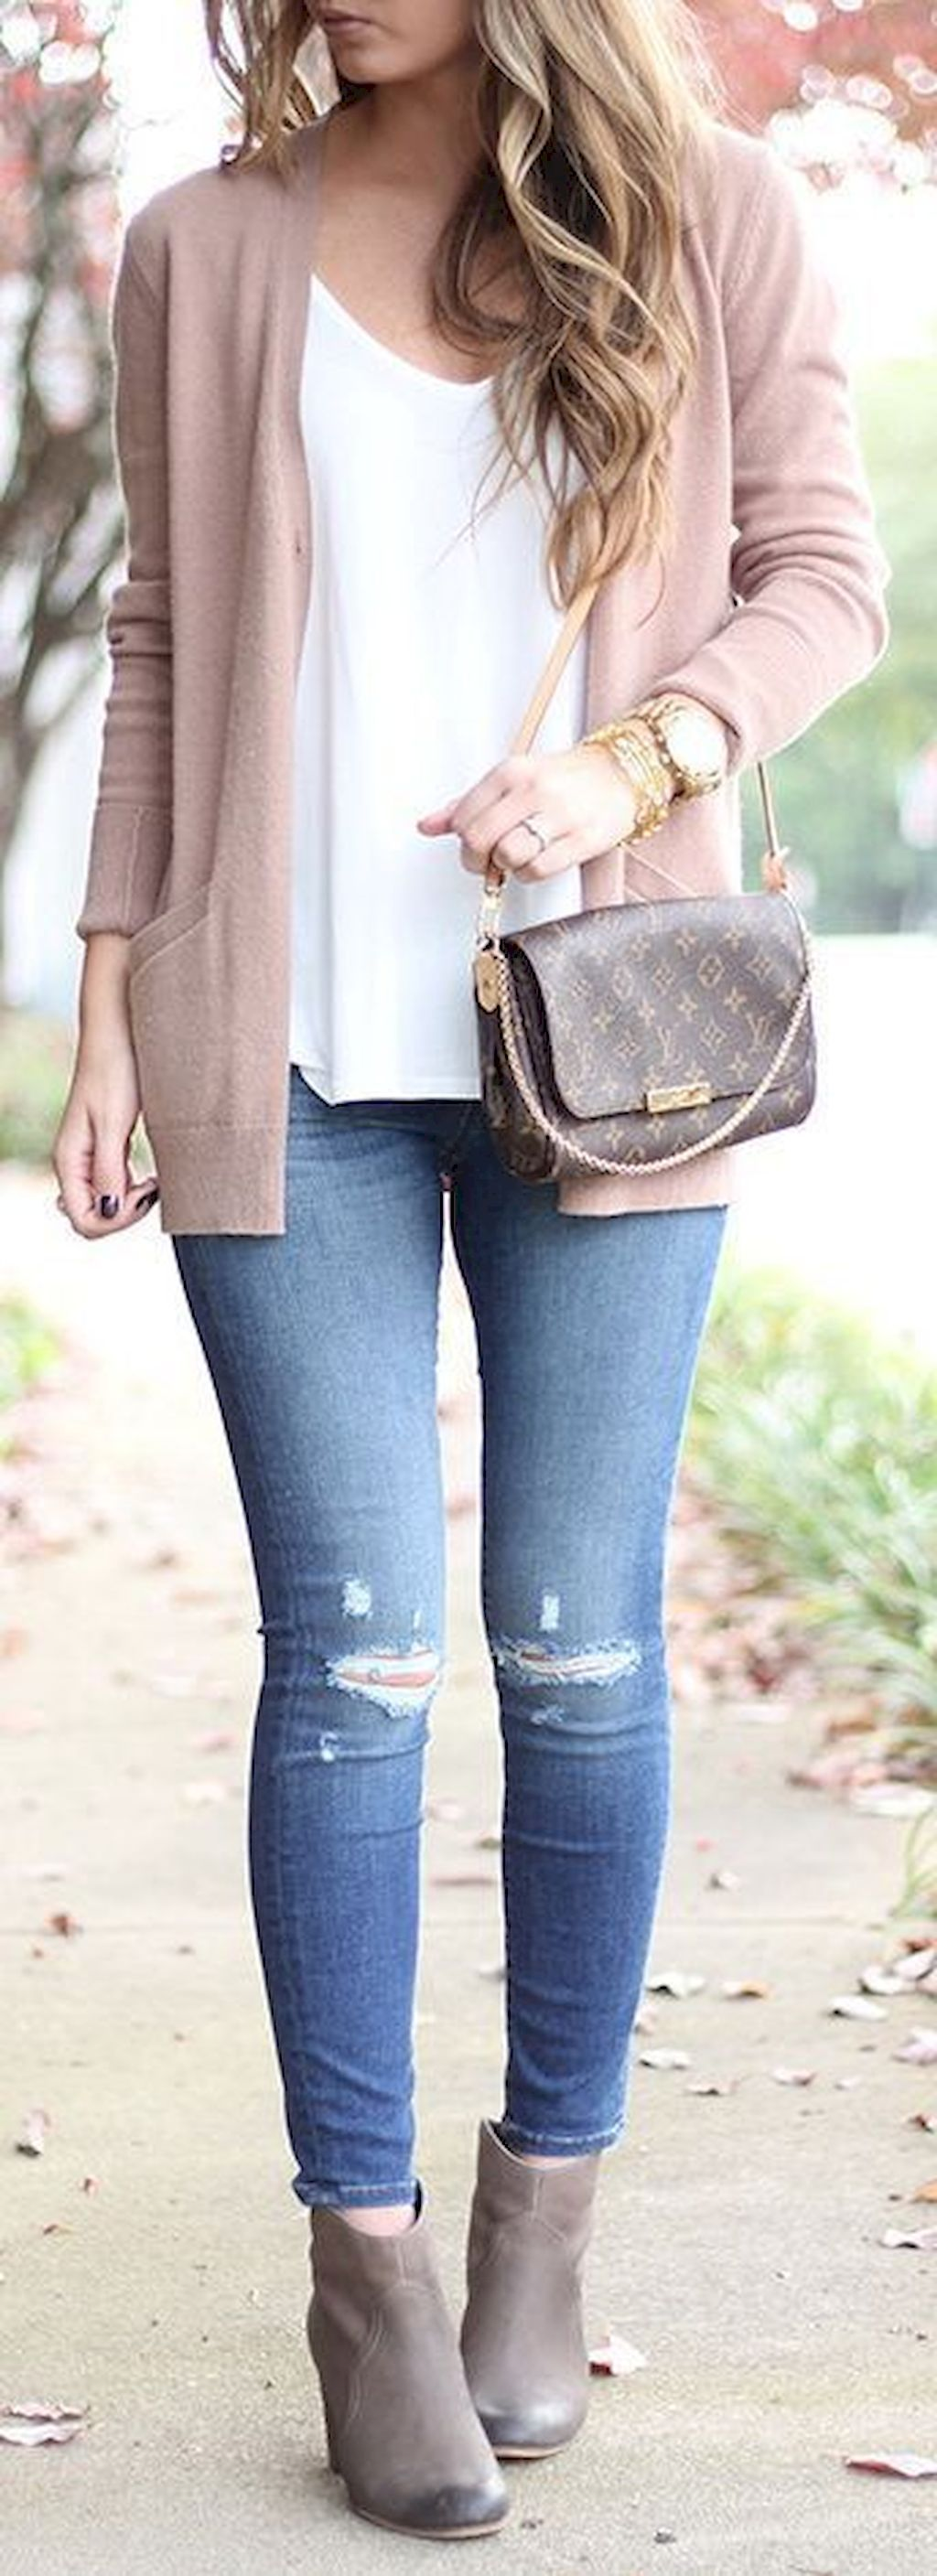 82 Fall Outfits with Cardigans for Women | Fall fashion, Woman and ...